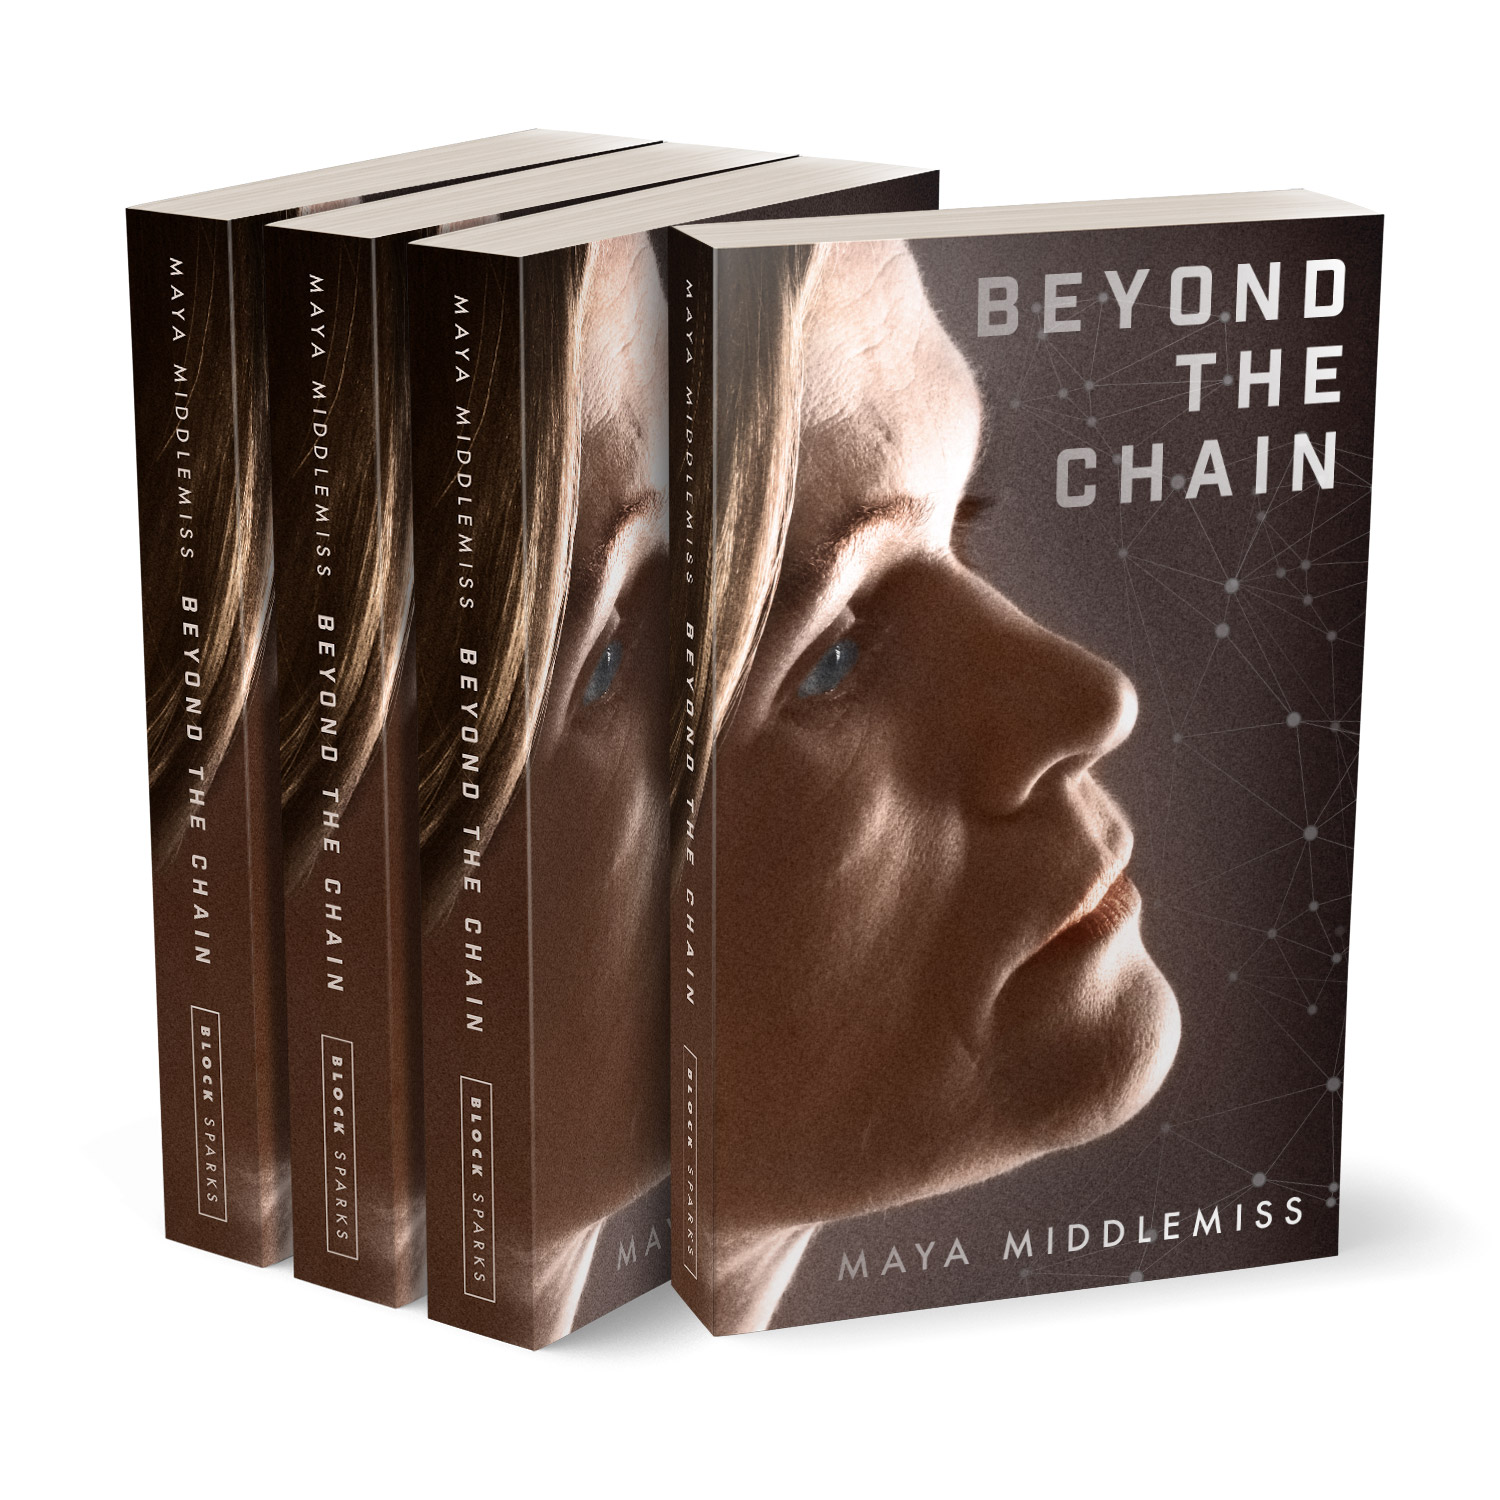 'Beyond The Chain' is a terrific female-led thriller. The author is Maya Middlemiss. The book cover design and interior formatting are by Mark Thomas. To learn more about what Mark could do for your book, please visit coverness.com.